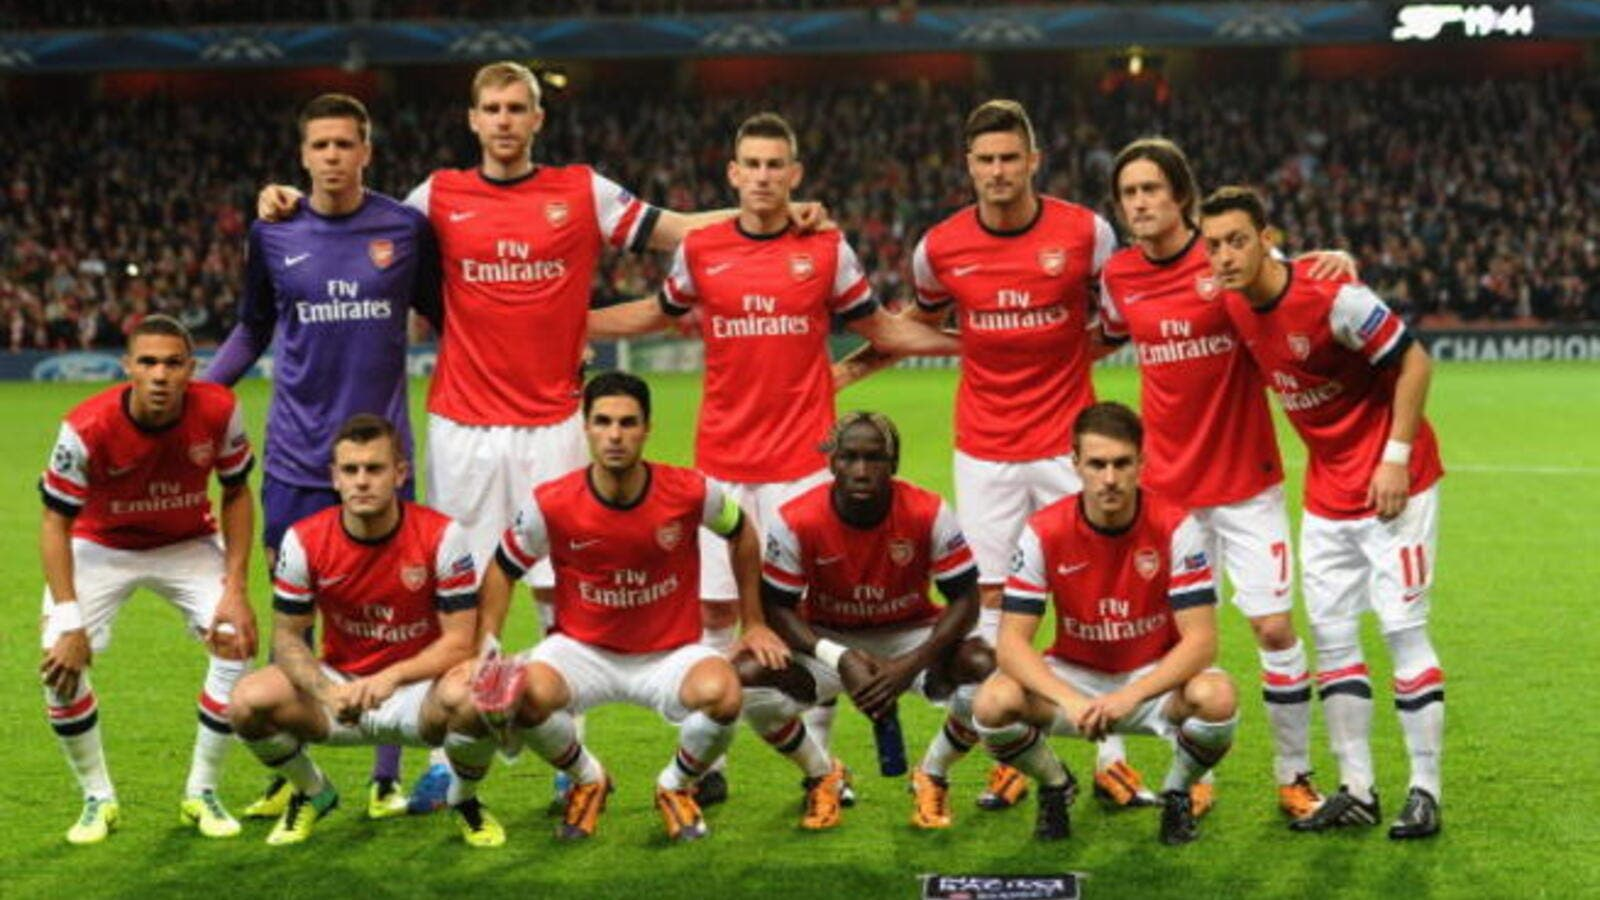 Arsenal most popular football club in China